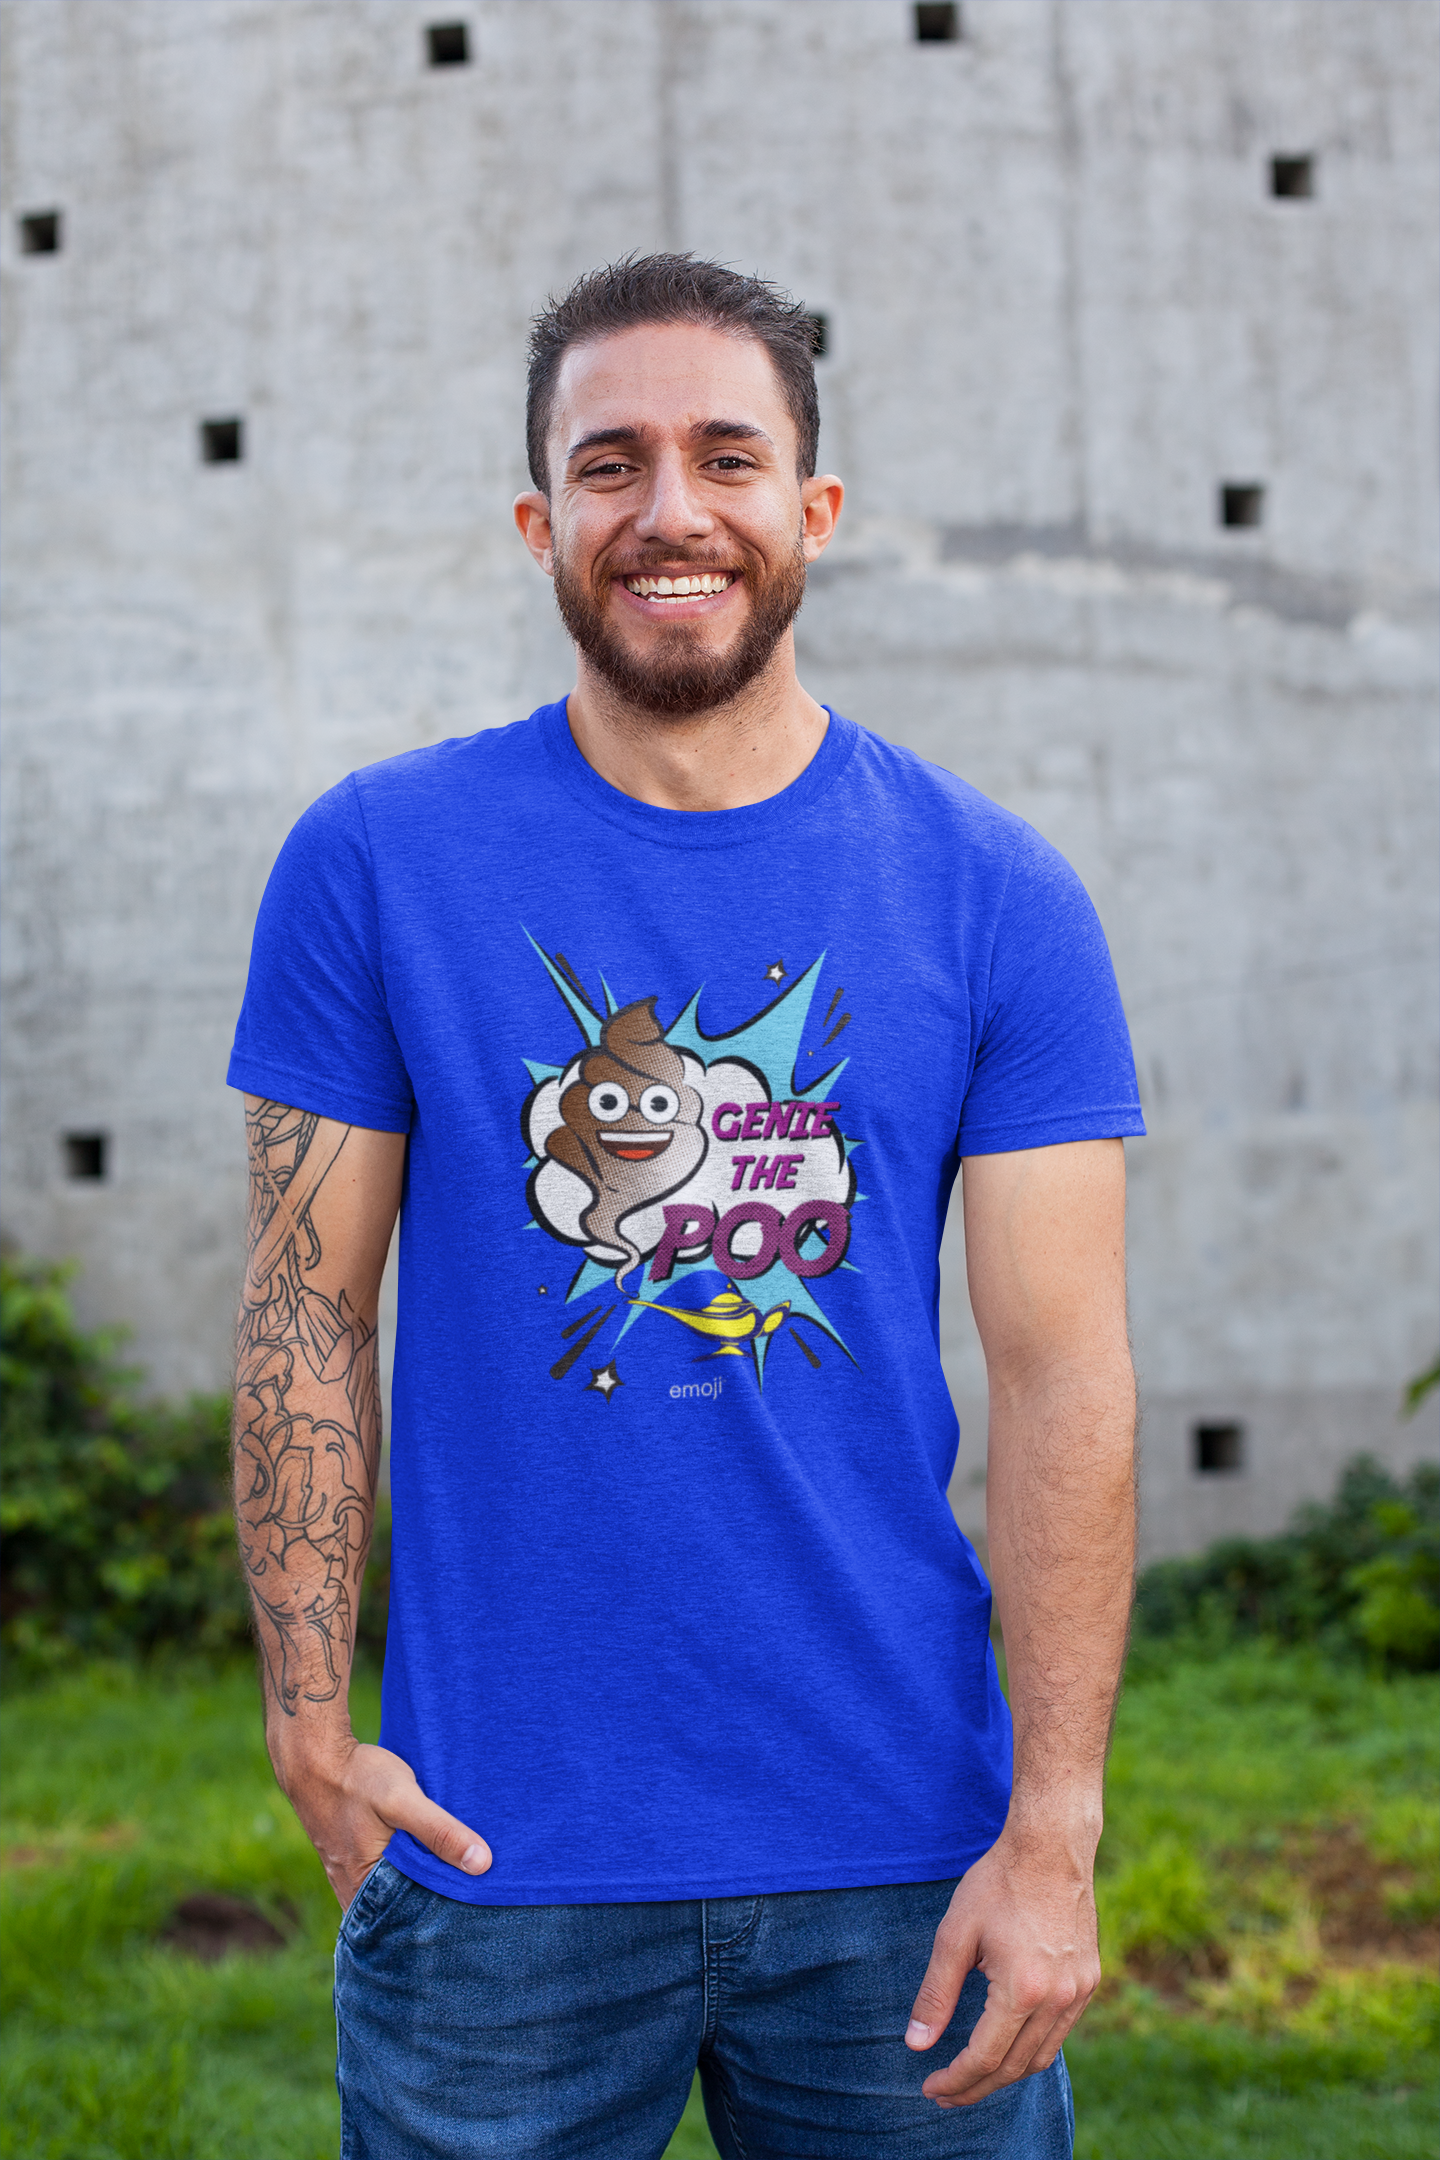 Official Licensed Emoji Printed T-Shirt for Men - Genie The Poo